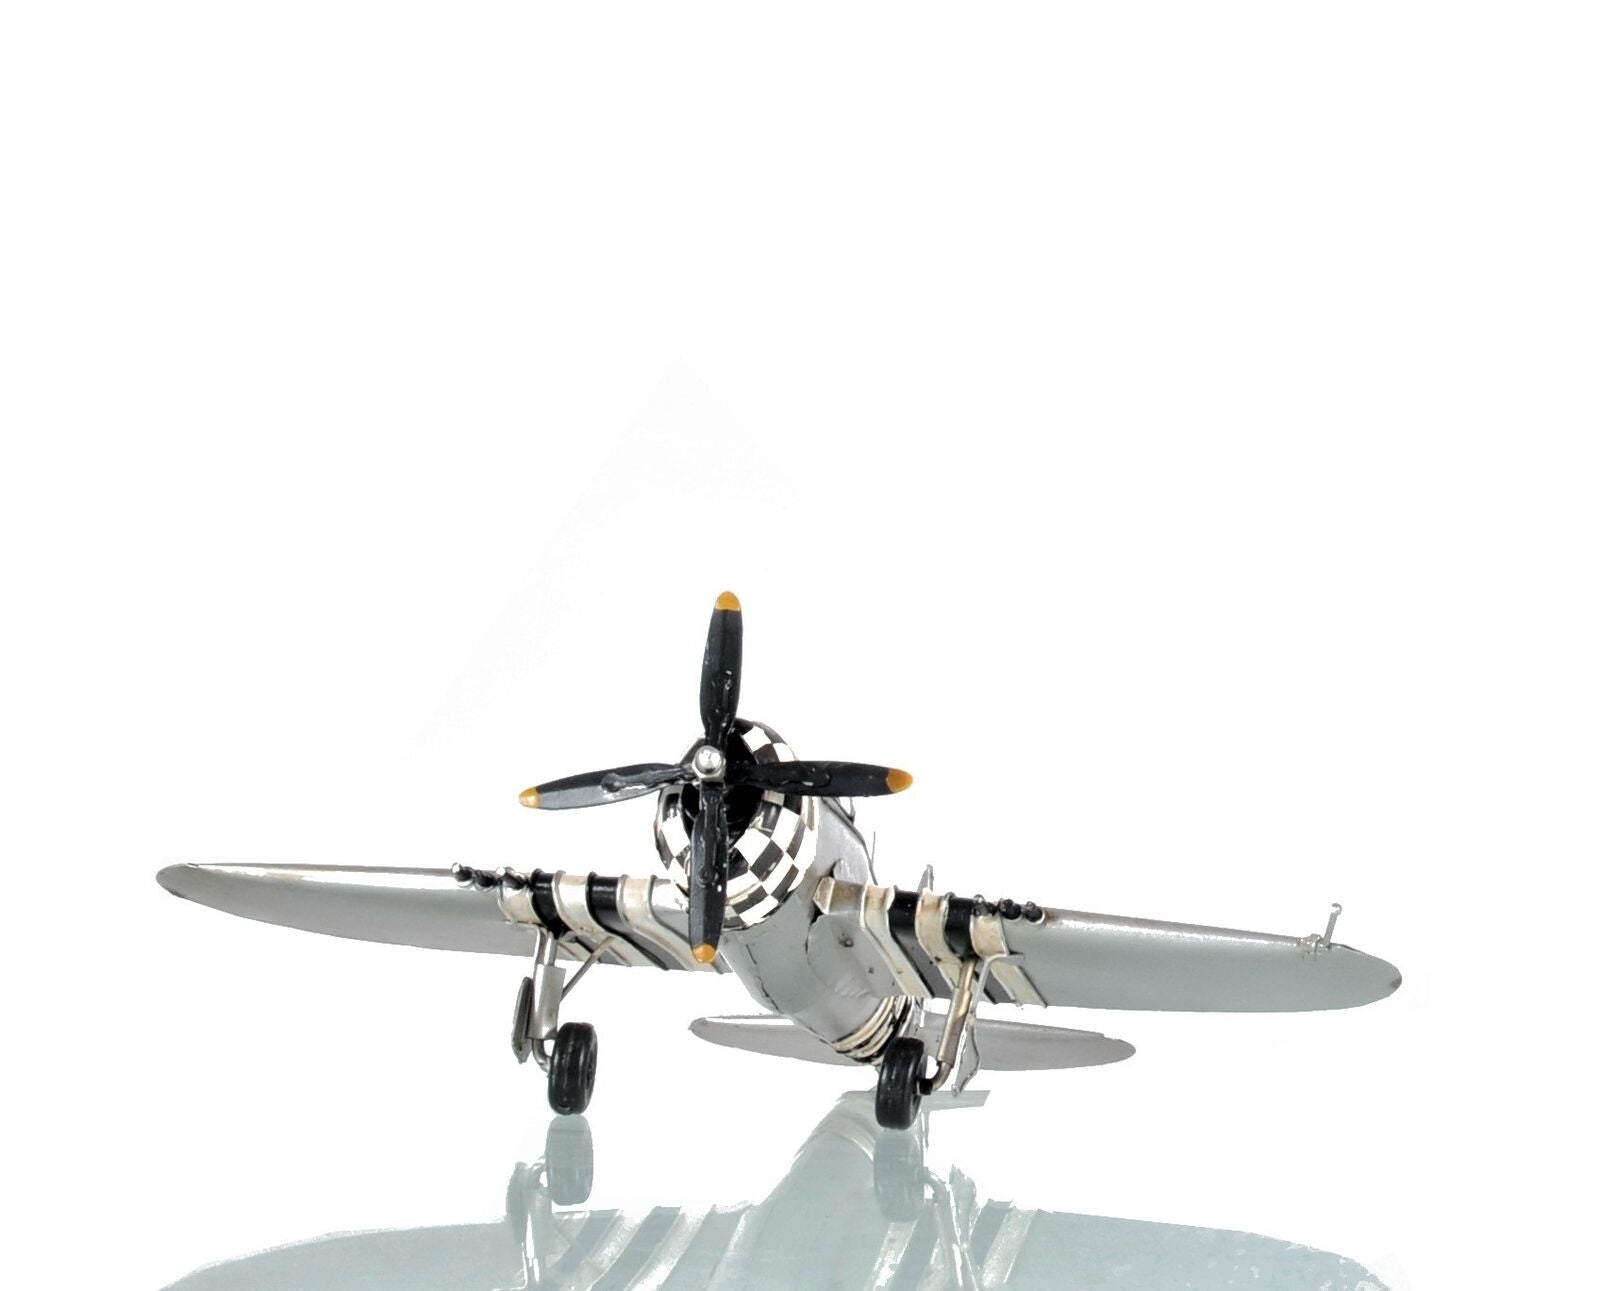 All Metal 1943 Republic P-47 Bomber-Fighter Airplane Model